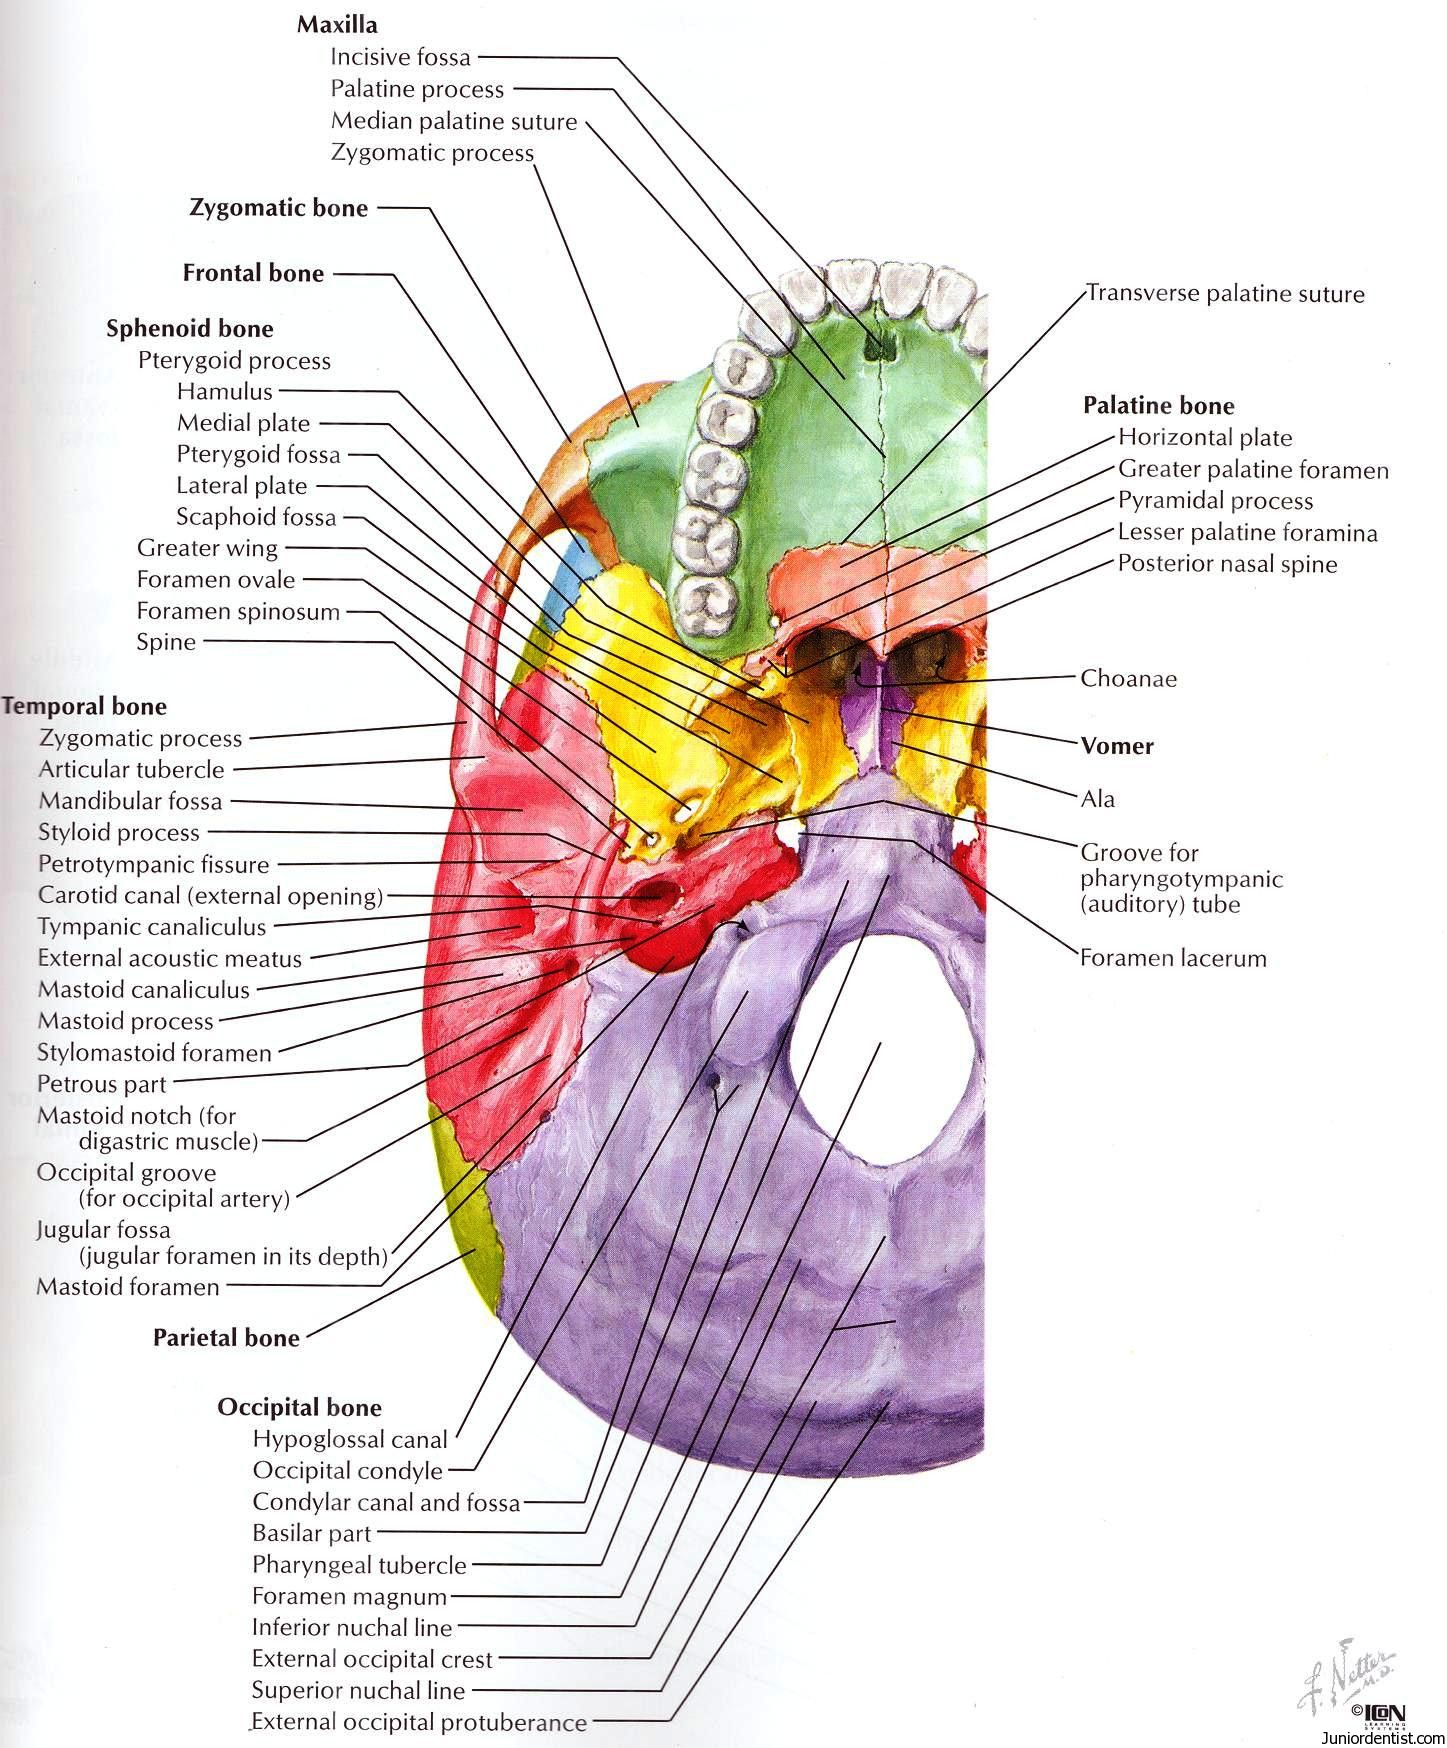 Structures passing trough Foramen of skull | Foramen of Skull